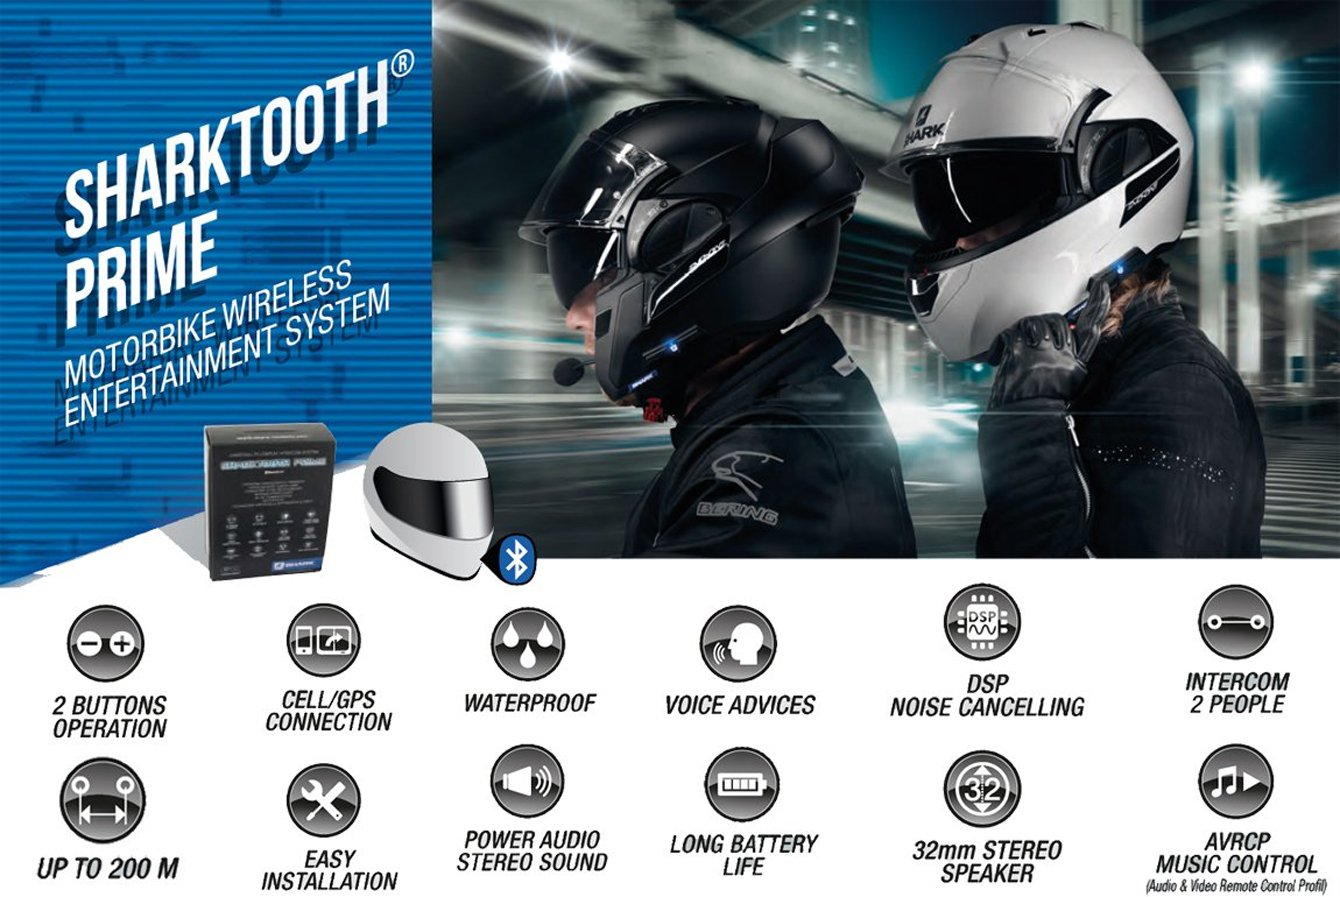 Sharktooth Prime Headset